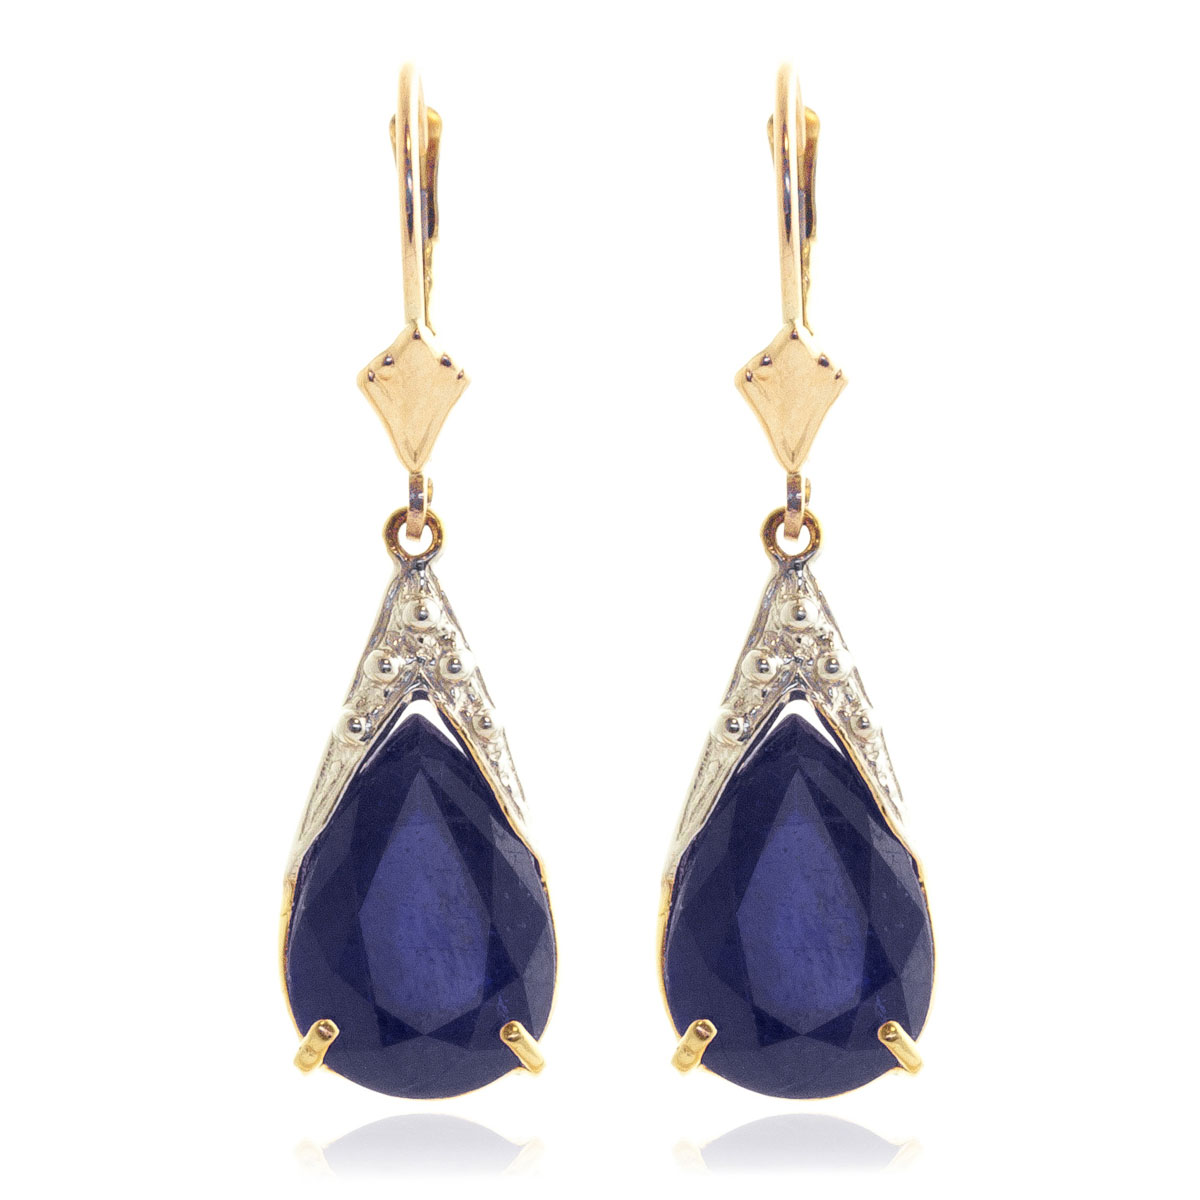 Sapphire Snowcap Drop Earrings 9.3 ctw in 9ct Gold